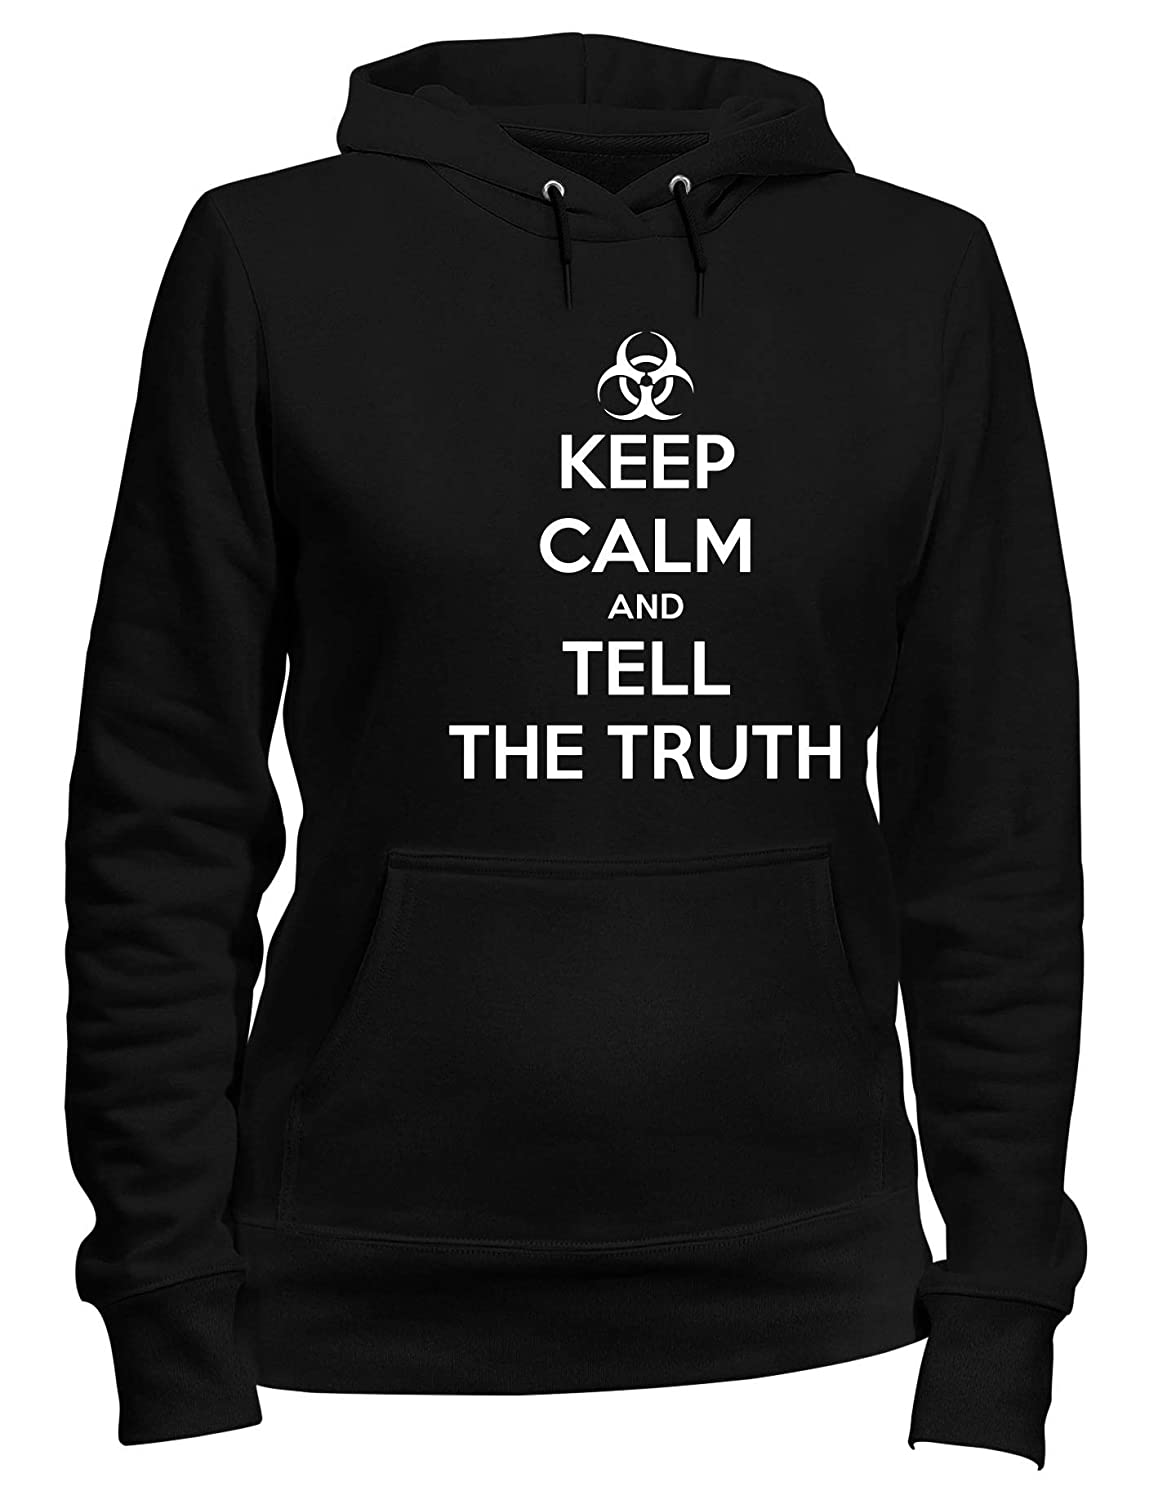 Speed Shirt Felpa Donna Cappuccio Nero TKC1138 Keep Calm And Tell The Truth